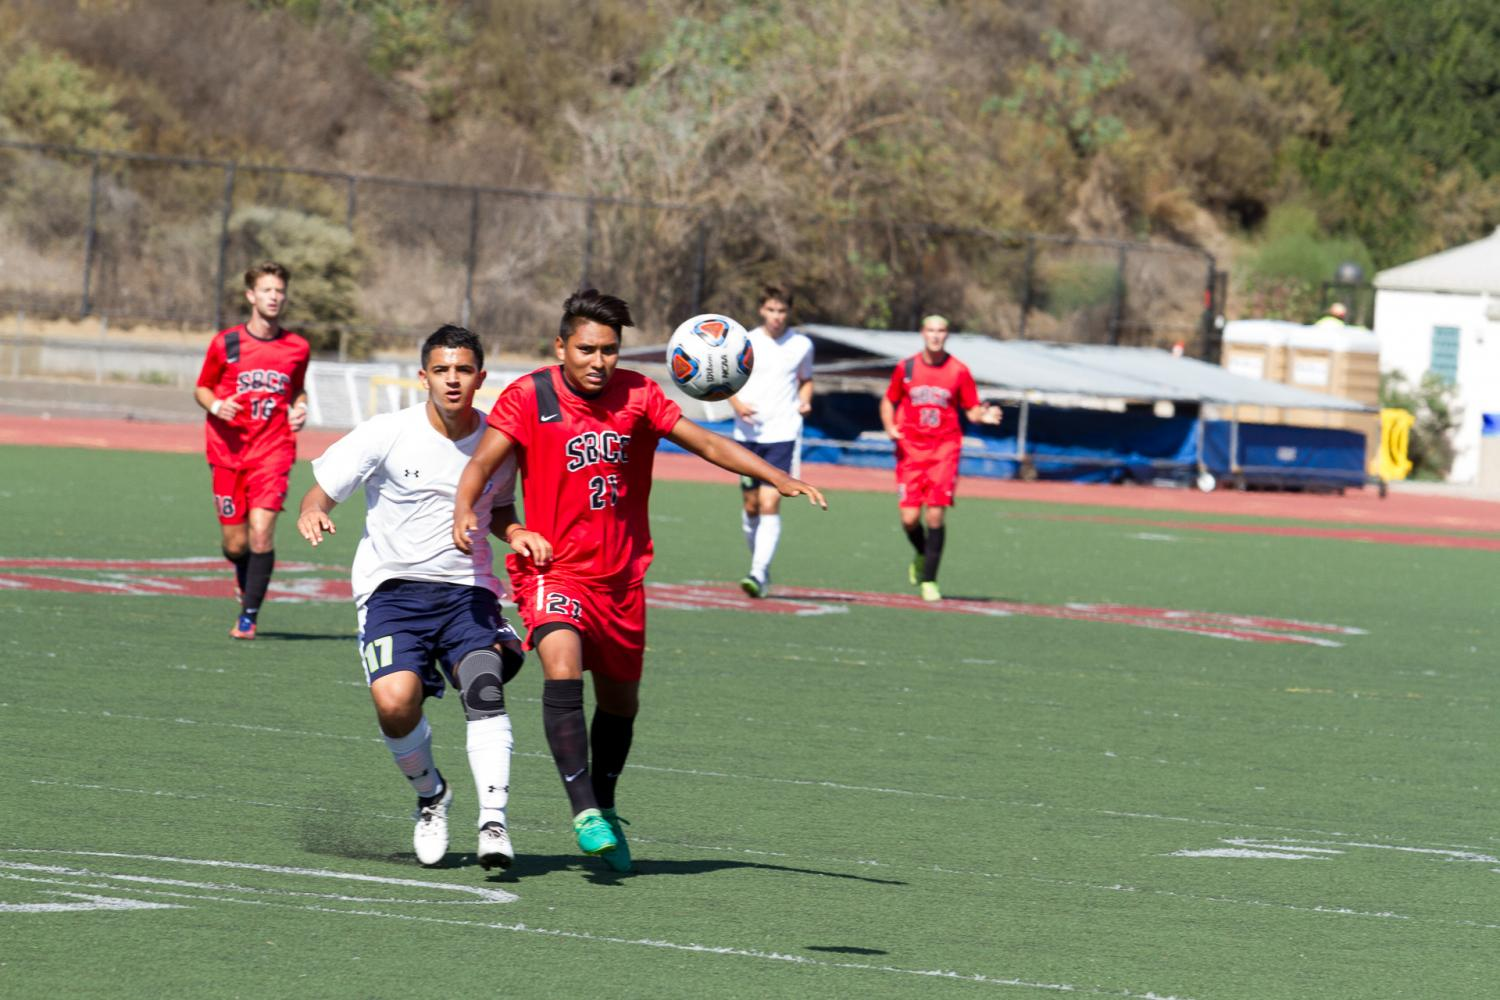 Vaqueros men's soccer ties 1-1 in third home game against Clovis